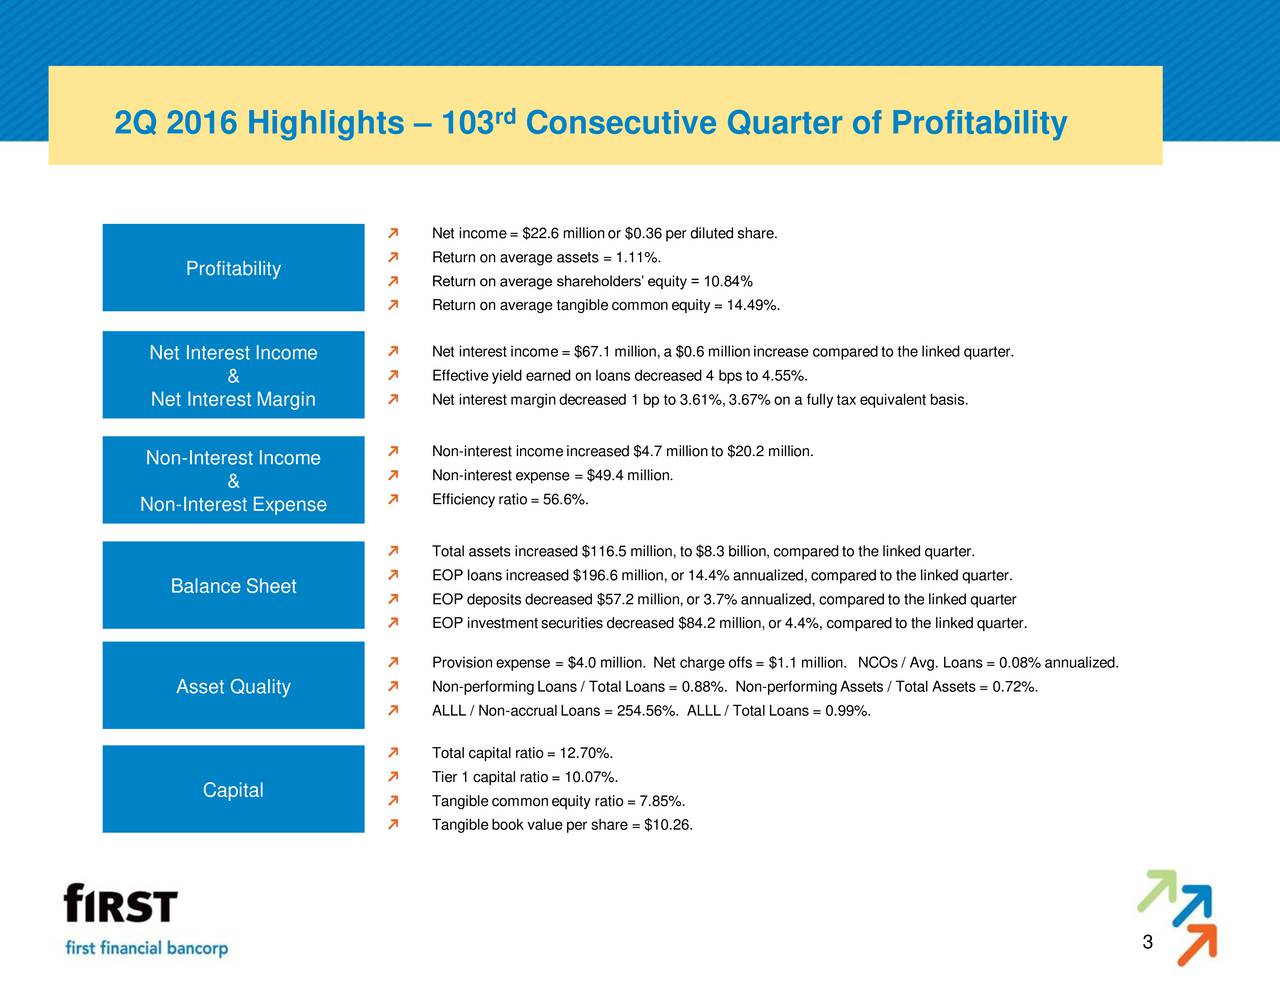 2Q 2016 Highlights  103 Consecutive Quarter of Profitability Net income= $22.6 millionor $0.36 per diluted share. Return on average assets = 1.11%. Profitability Return on average shareholders equity = 10.84% Return on average tangible common equity = 14.49%. Net Interest Income Net interest income= $67.1 million,a $0.6 millionincrease compared to the linked quarter. & Effective yield earned on loans decreased 4 bps to 4.55%. Net Interest Margin Net interest margindecreased 1 bp to 3.61%, 3.67% on a fully tax equivalent basis. Non-Interest Income Non-interest incomeincreased $4.7 millionto $20.2 million. Non-interest expense = $49.4 million. & Non-Interest Expense Efficiency ratio = 56.6%. Total assets increased $116.5 million, to $8.3 billion, compared to the linked quarter. EOP loans increased $196.6 million, or 14.4% annualized, compared to the linked quarter. Balance Sheet EOP deposits decreased $57.2 million,or 3.7% annualized, compared to the linked quarter EOP investmentsecurities decreased $84.2 million,or 4.4%, compared to the linked quarter. Provision expense = $4.0 million. Net charge offs = $1.1 million. NCOs / Avg. Loans = 0.08% annualized. Asset Quality Non-performingLoans / Total Loans = 0.88%. Non-performingAssets / Total Assets = 0.72%. ALLL / Non-accrual Loans = 254.56%. ALLL / Total Loans = 0.99%. Total capital ratio = 12.70%. Tier 1 capital ratio = 10.07%. Capital Tangible commonequity ratio = 7.85%. Tangible book value per share = $10.26. 3